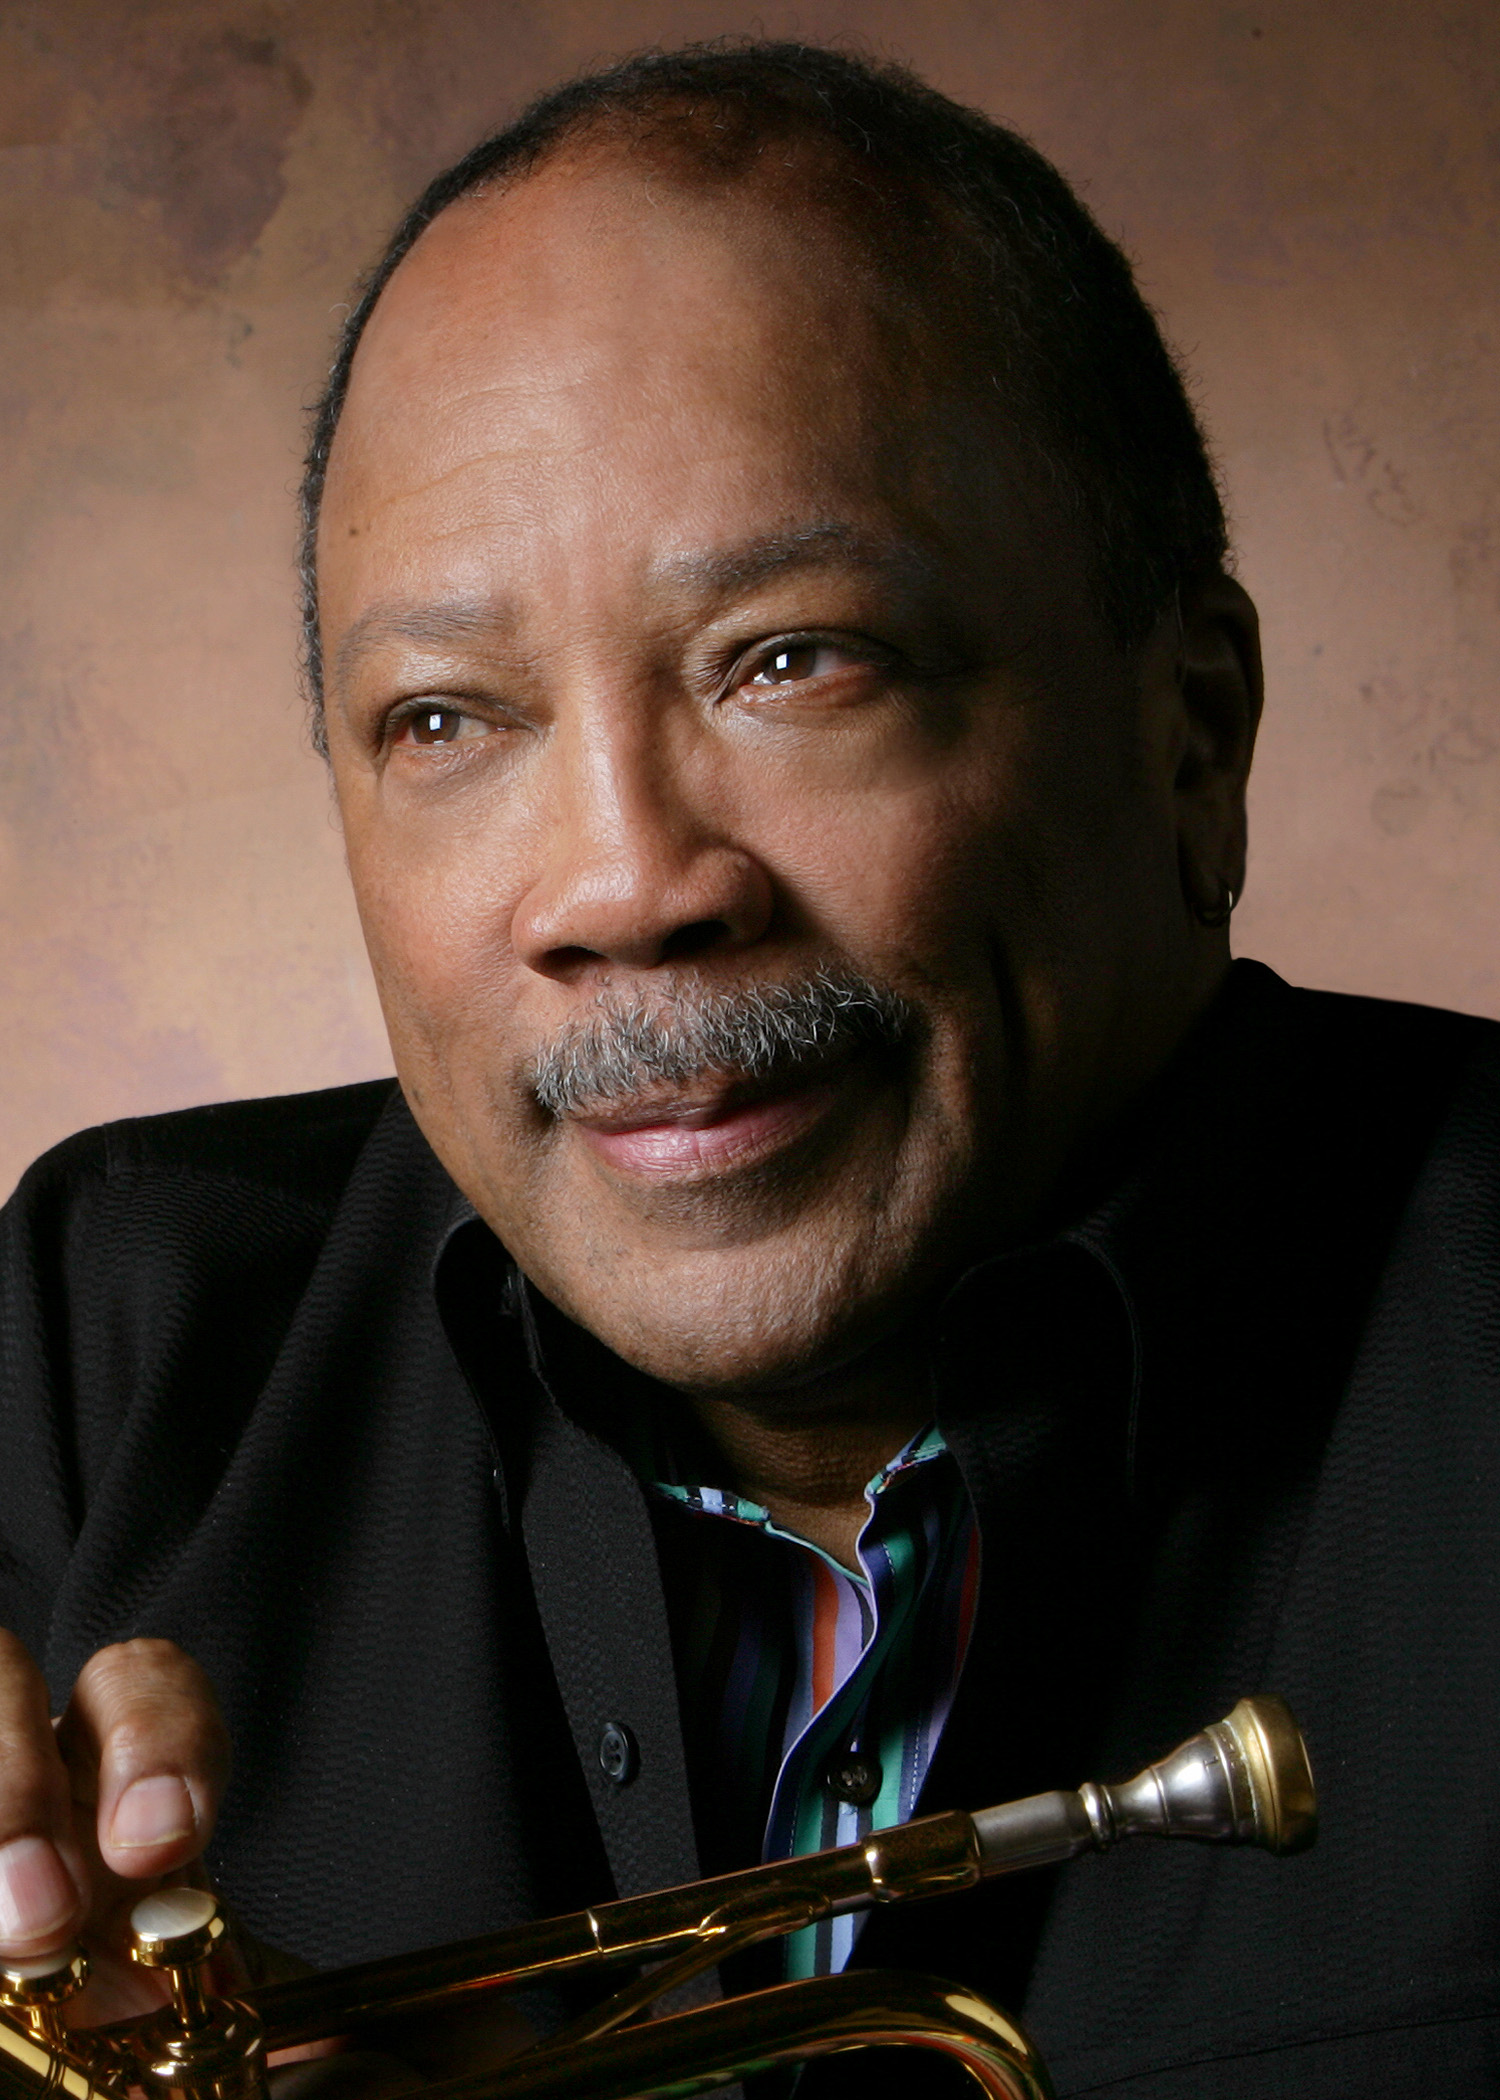 quincy jones Quincy jones artist page: interviews, features and/or performances archived at npr music.